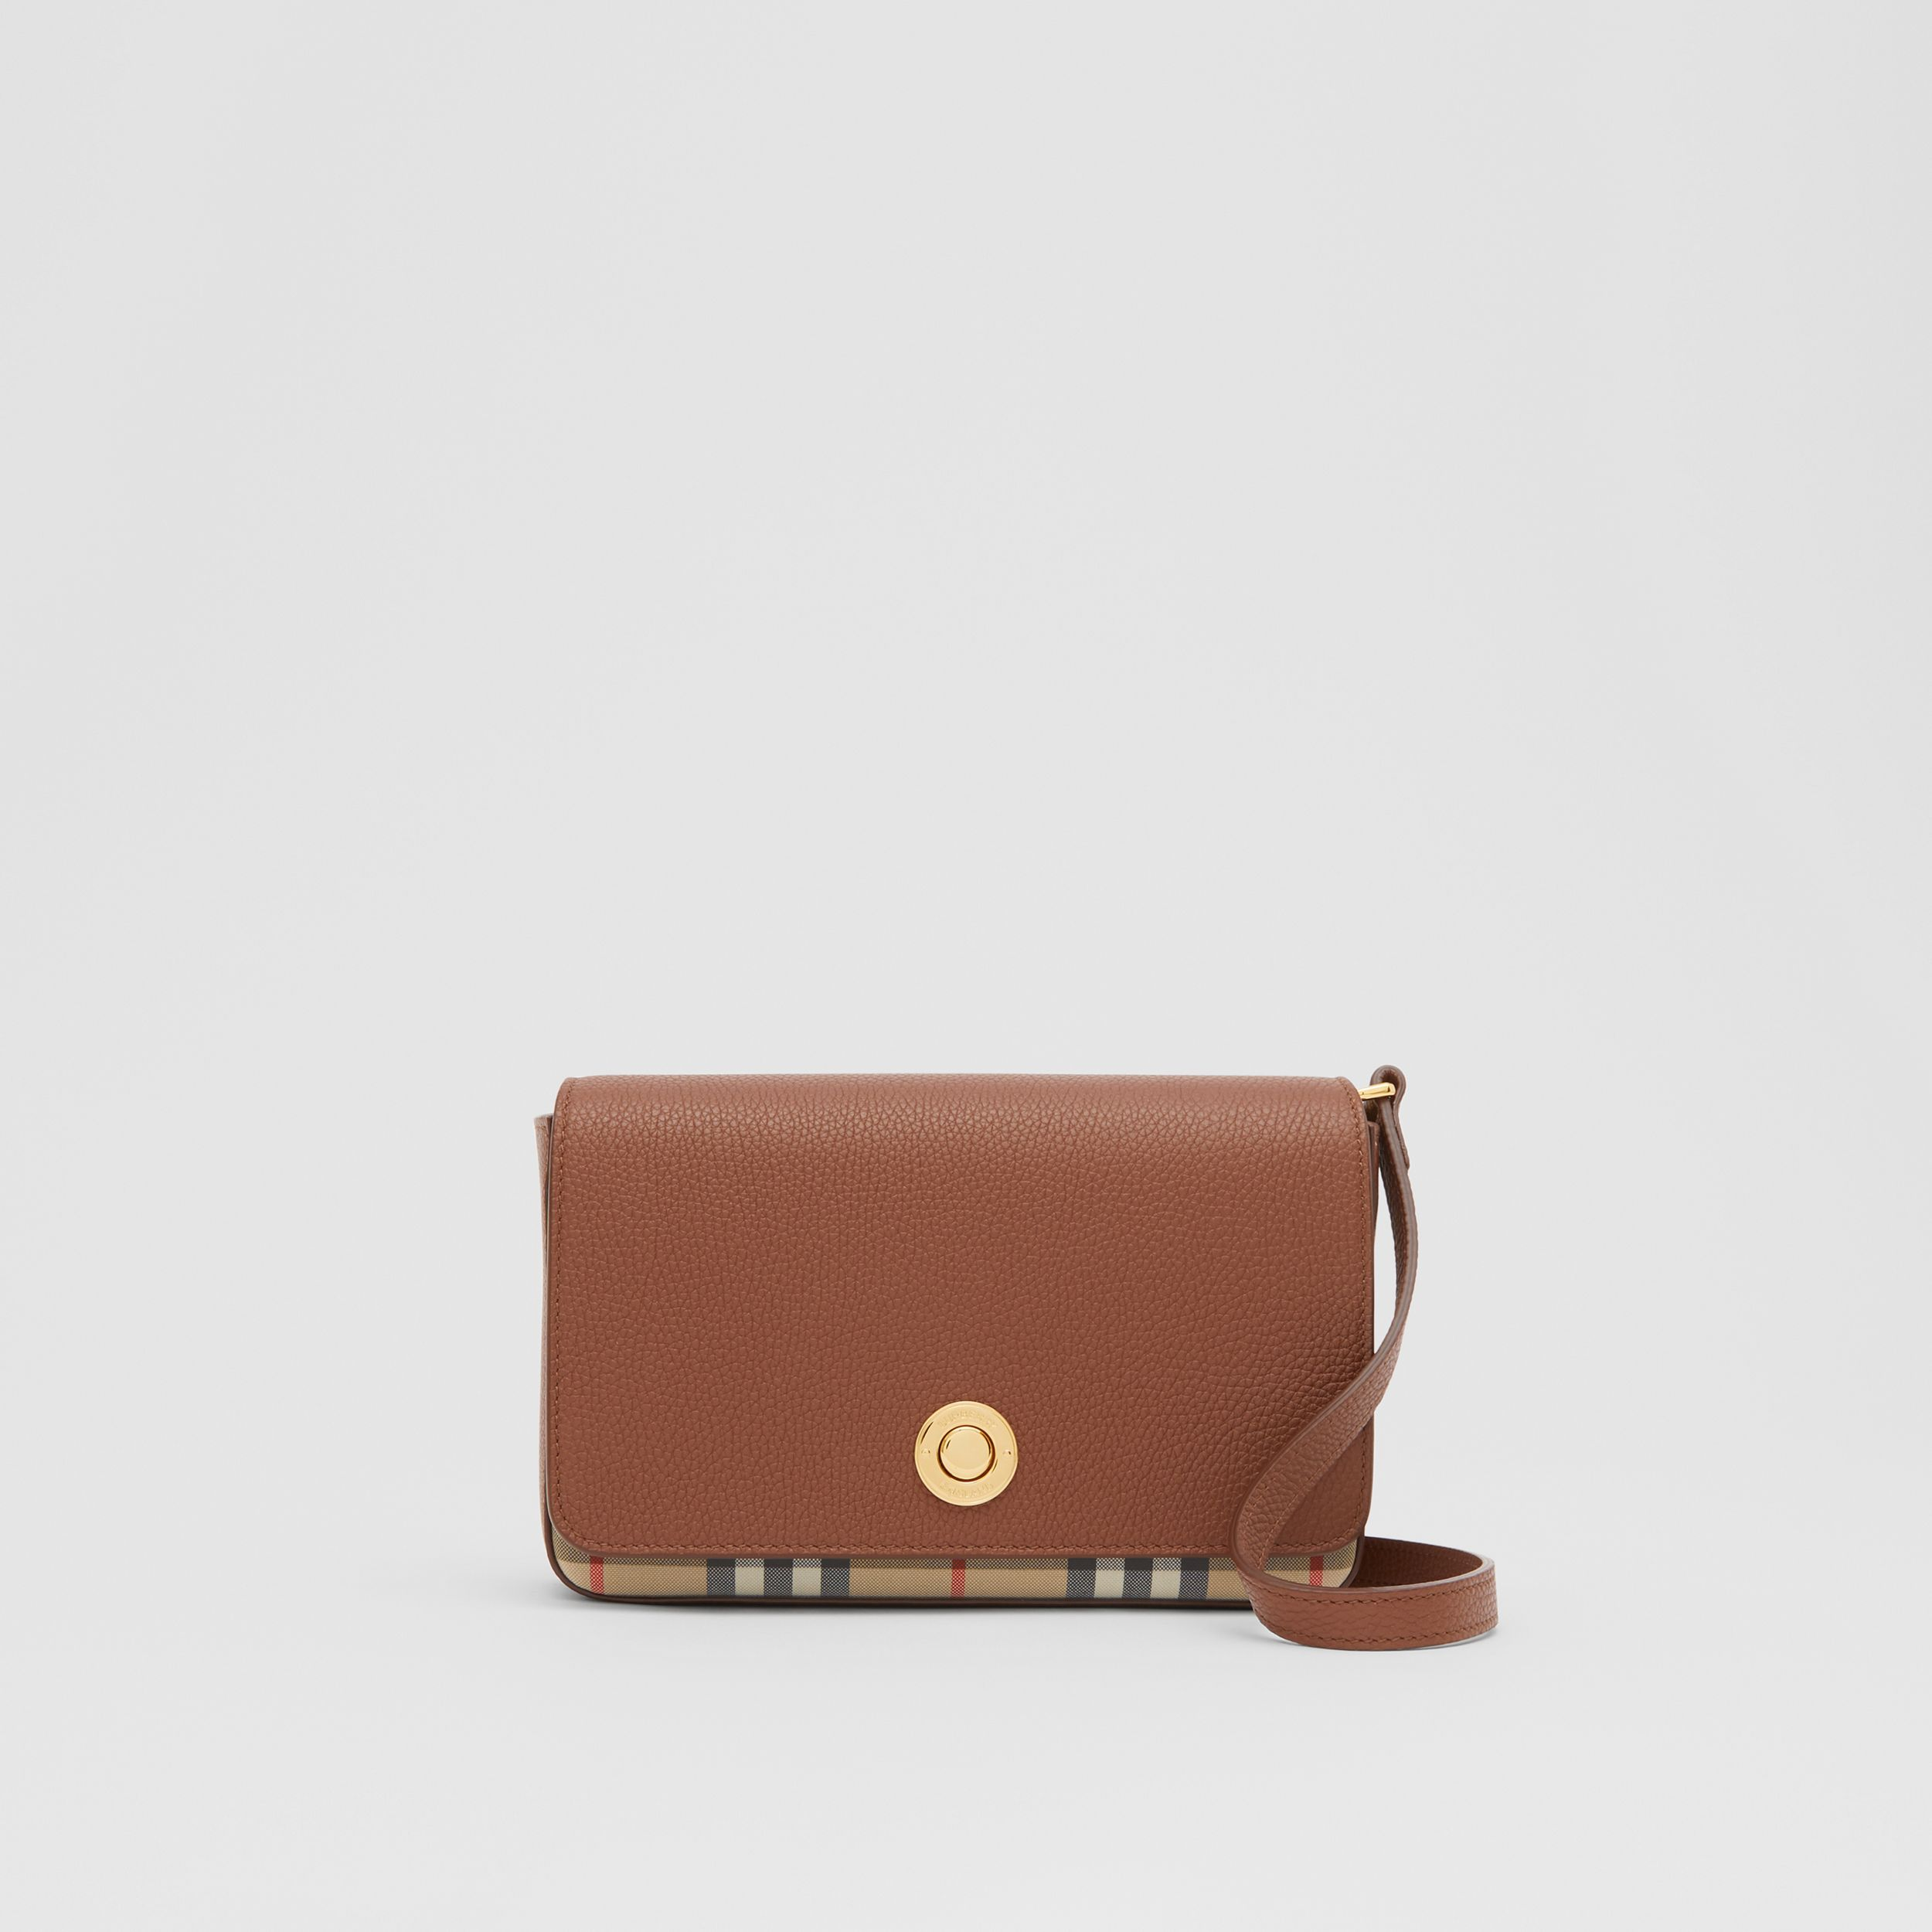 Small Leather and Vintage Check Crossbody Bag in Tan - Women | Burberry Australia - 1